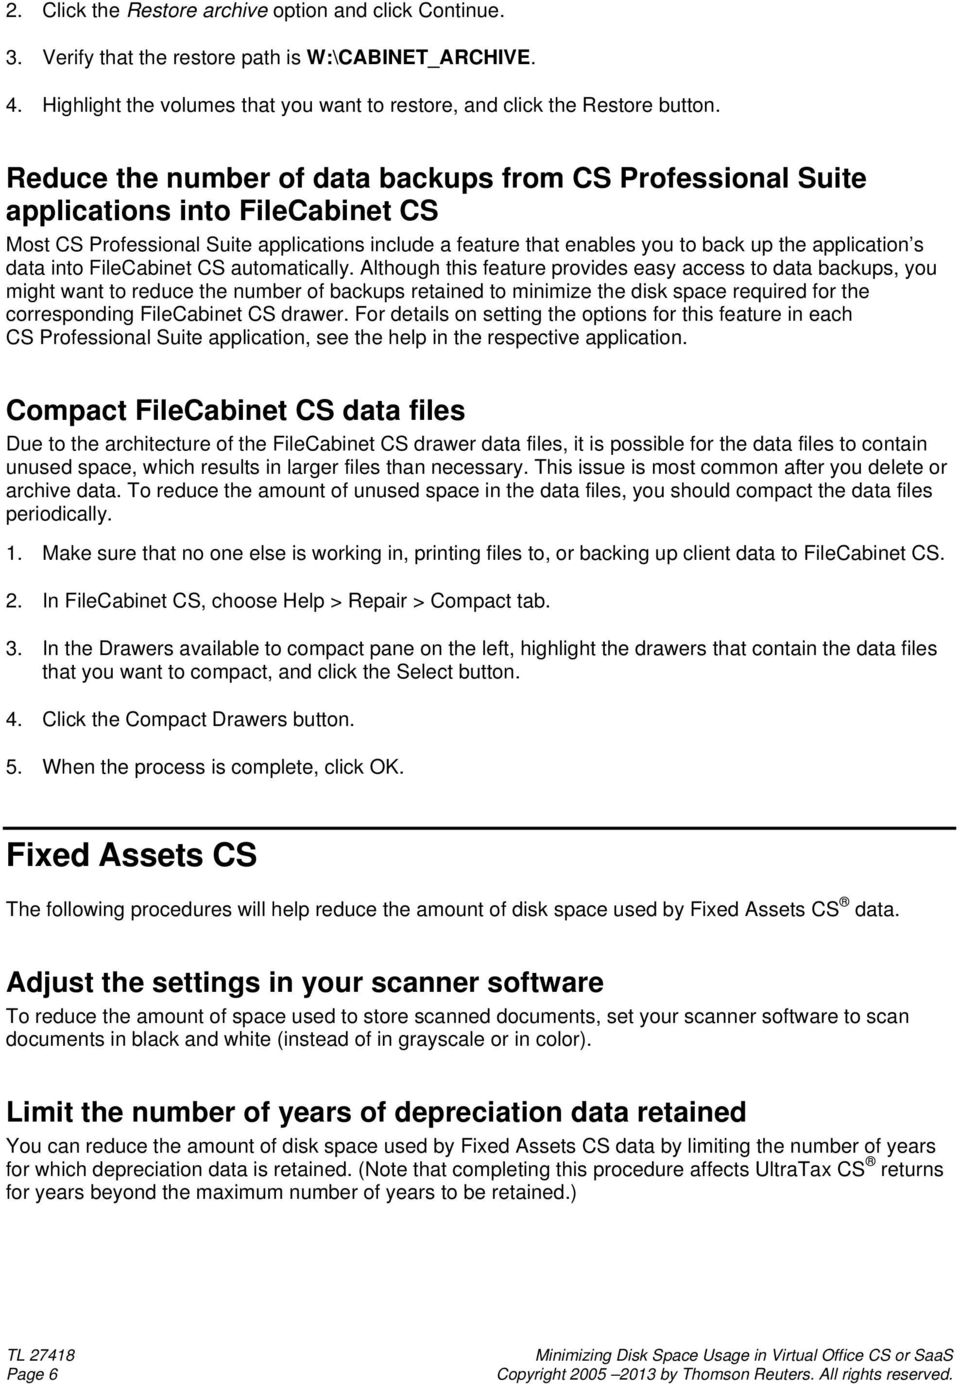 data into FileCabinet CS automatically.